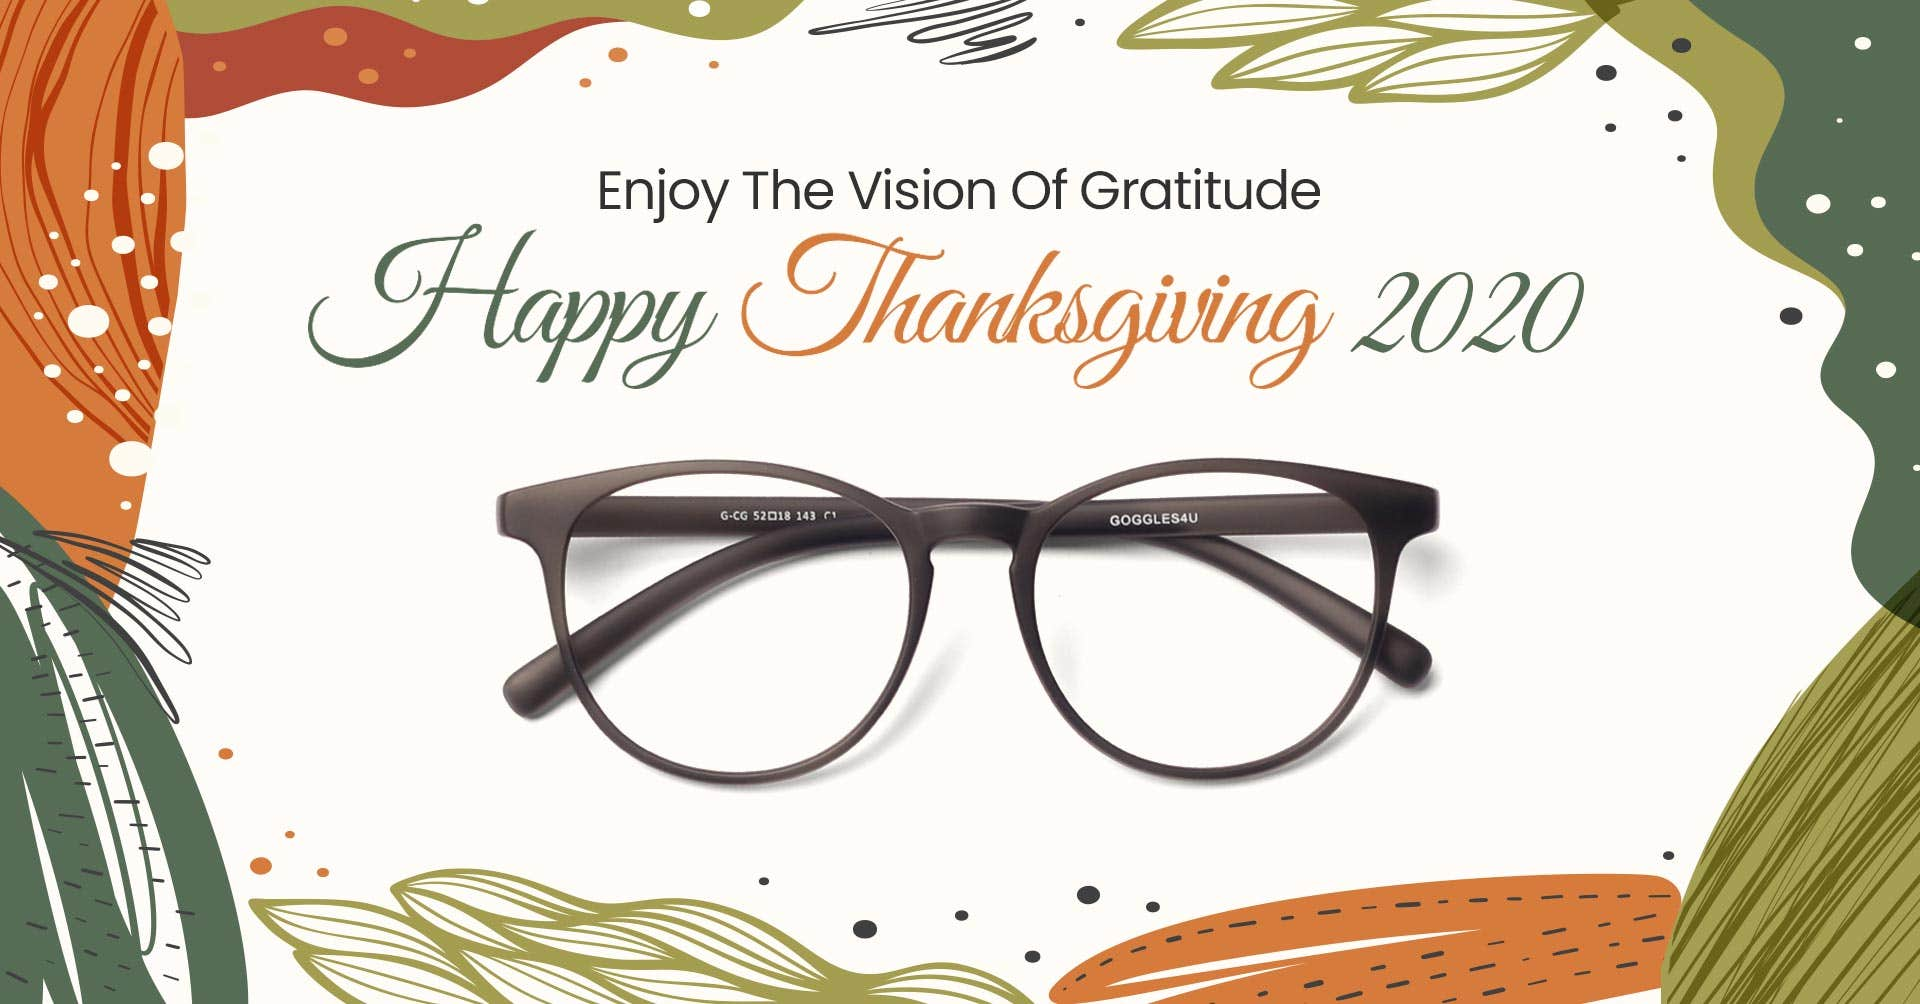 Enjoy The Vision Of Gratitude - Happy Thanksgiving 2020 From Goggles4U!